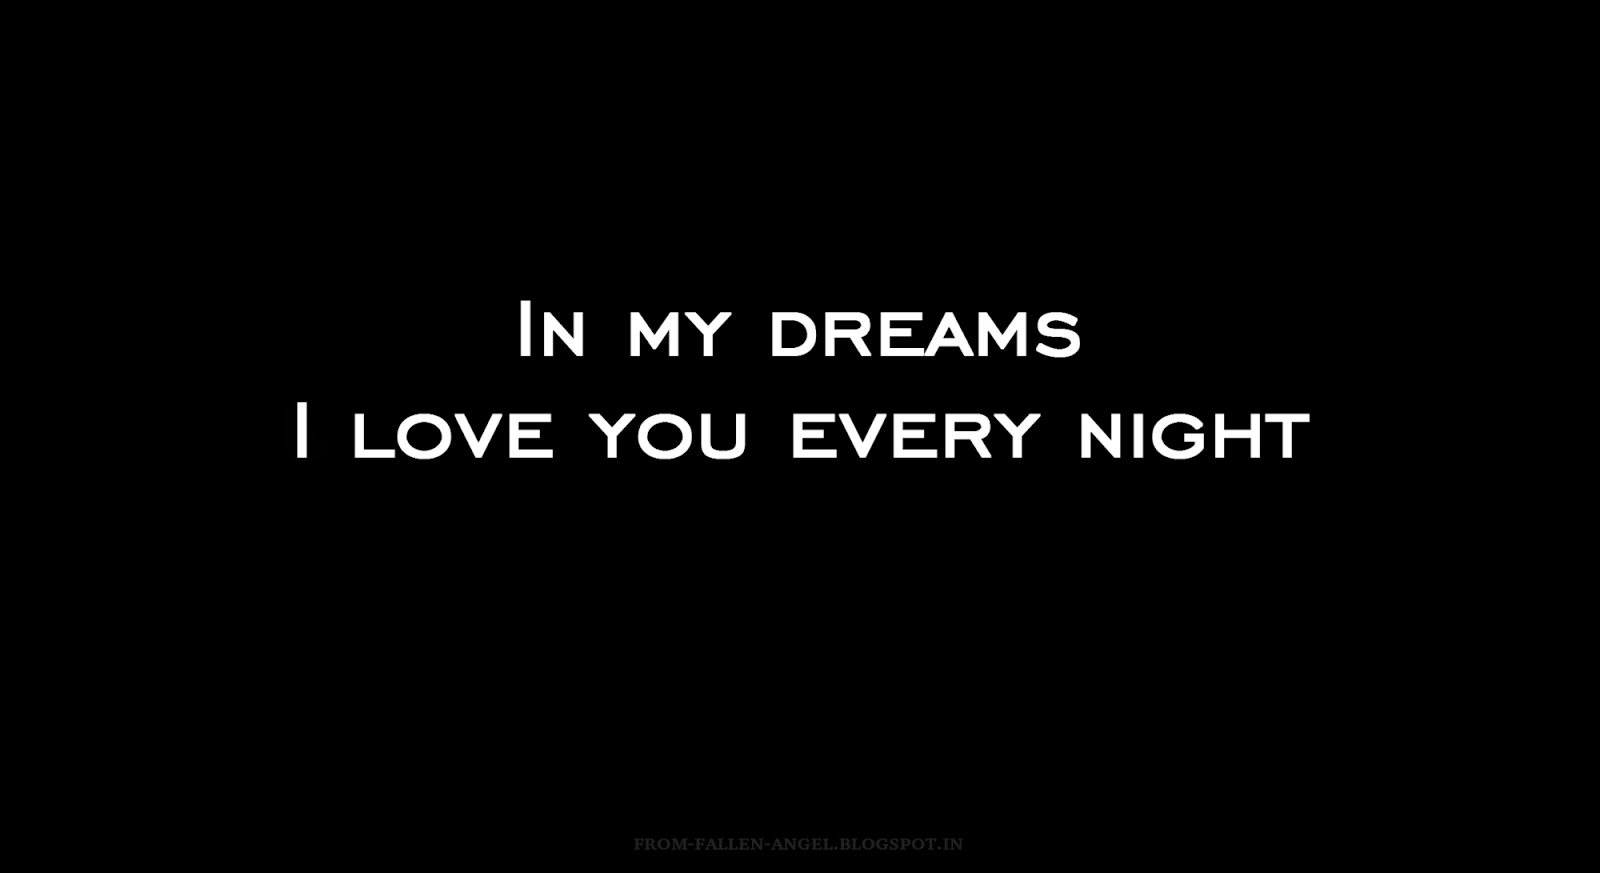 In my dreams I love you every night